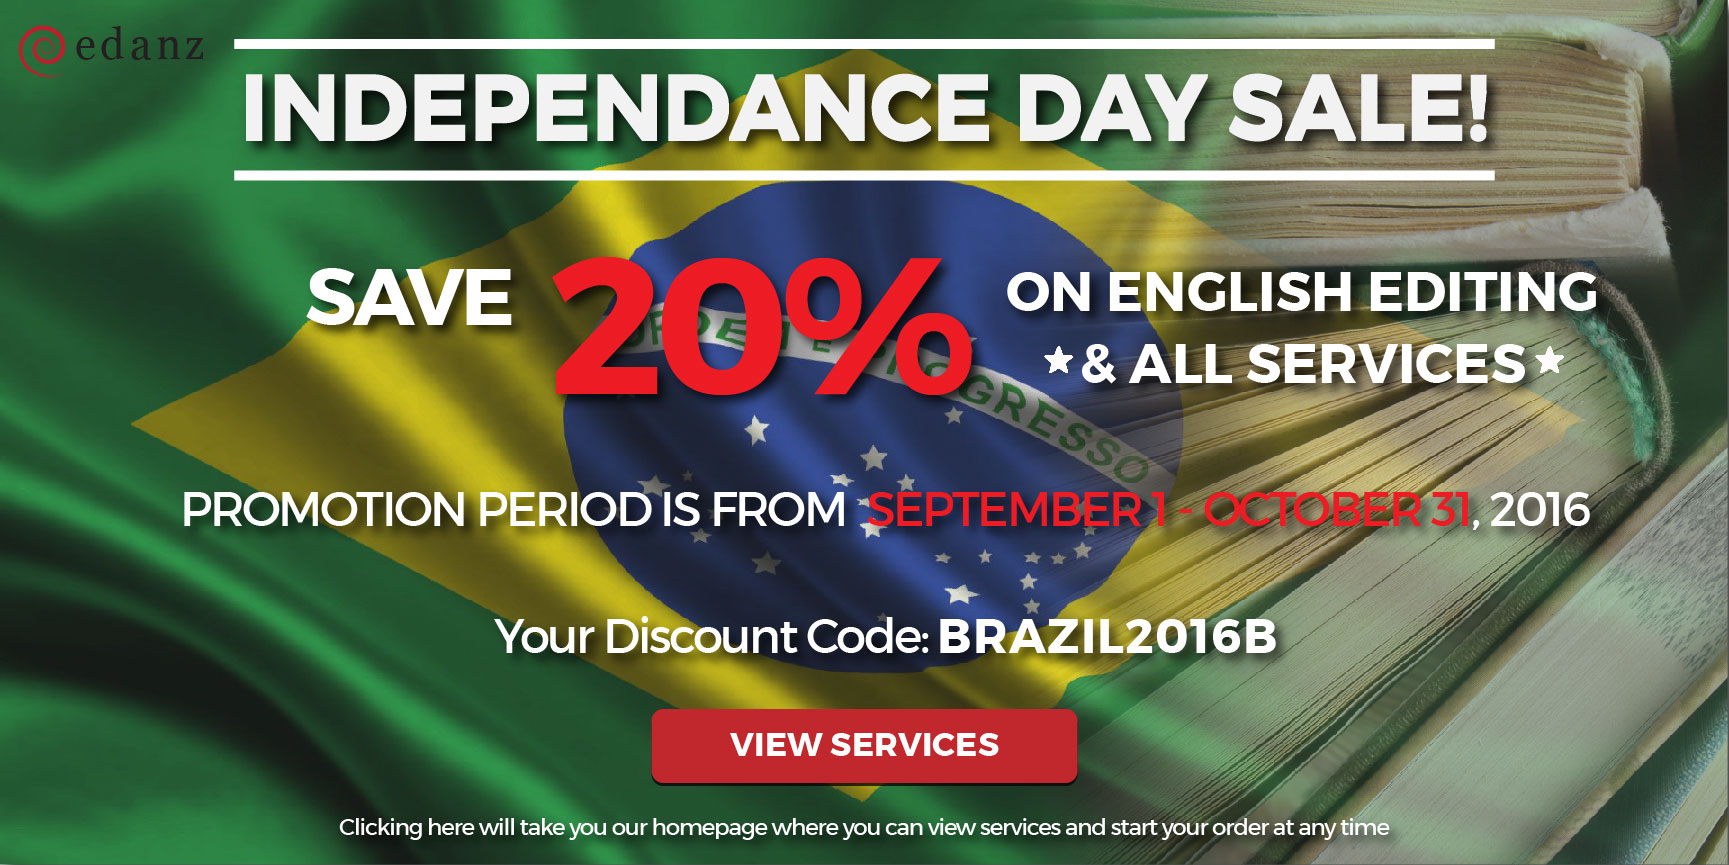 edanz editing indepedence day discount